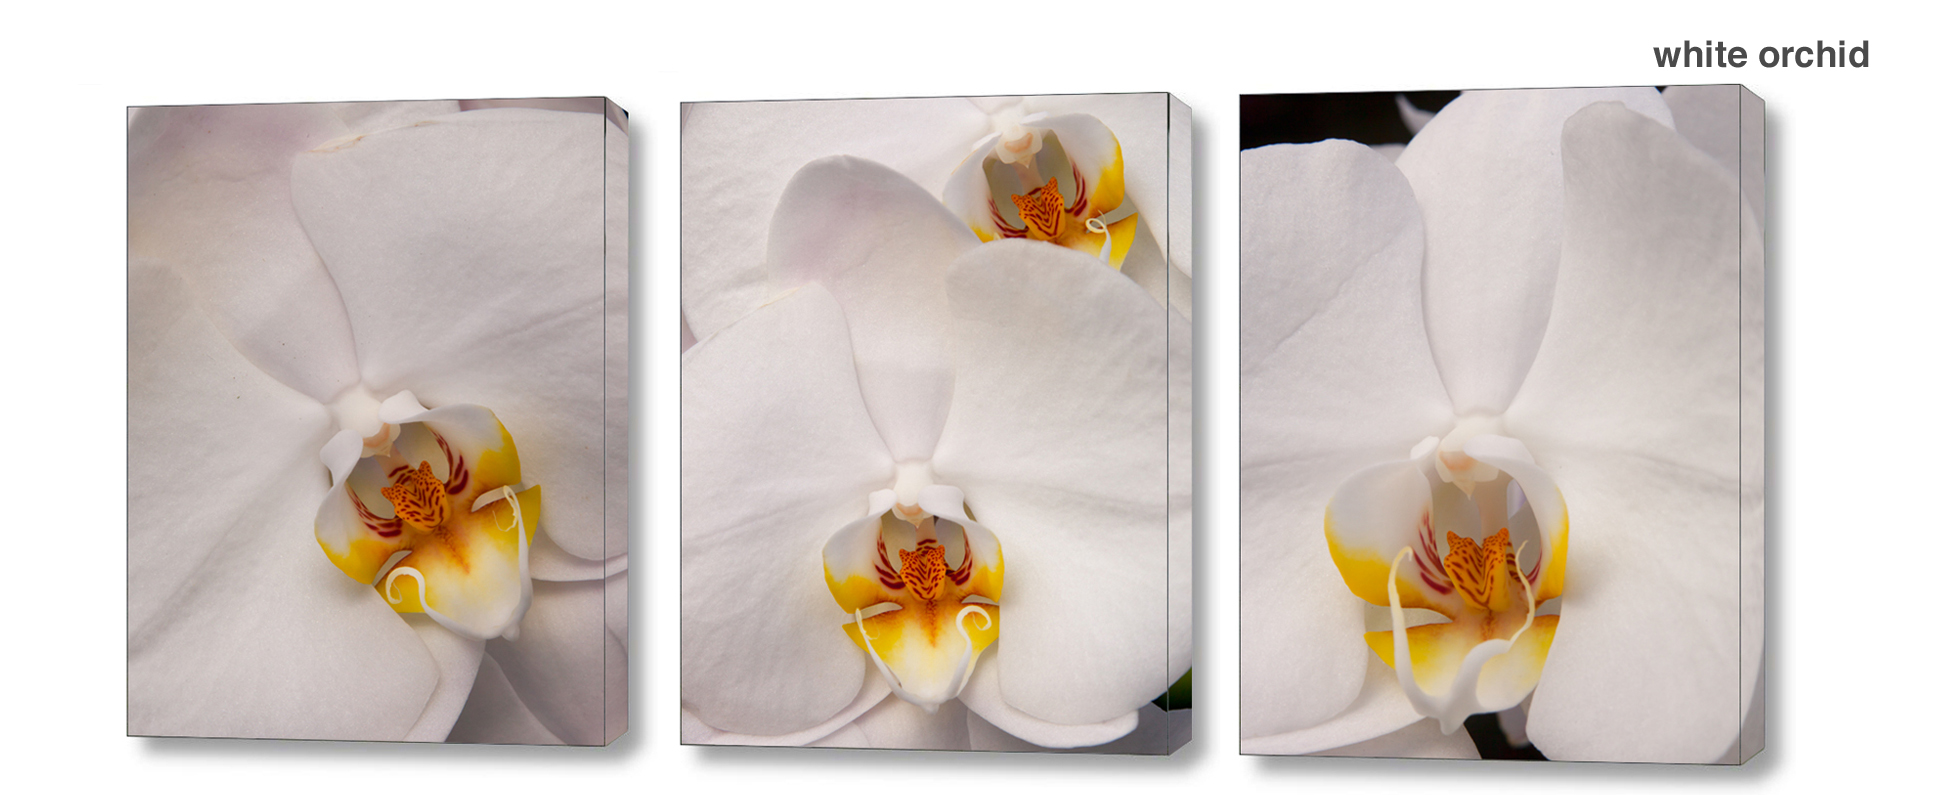 white orchid series - Floral Series Wall Decor Macro Photography Matted & Giclée Canvas Prints